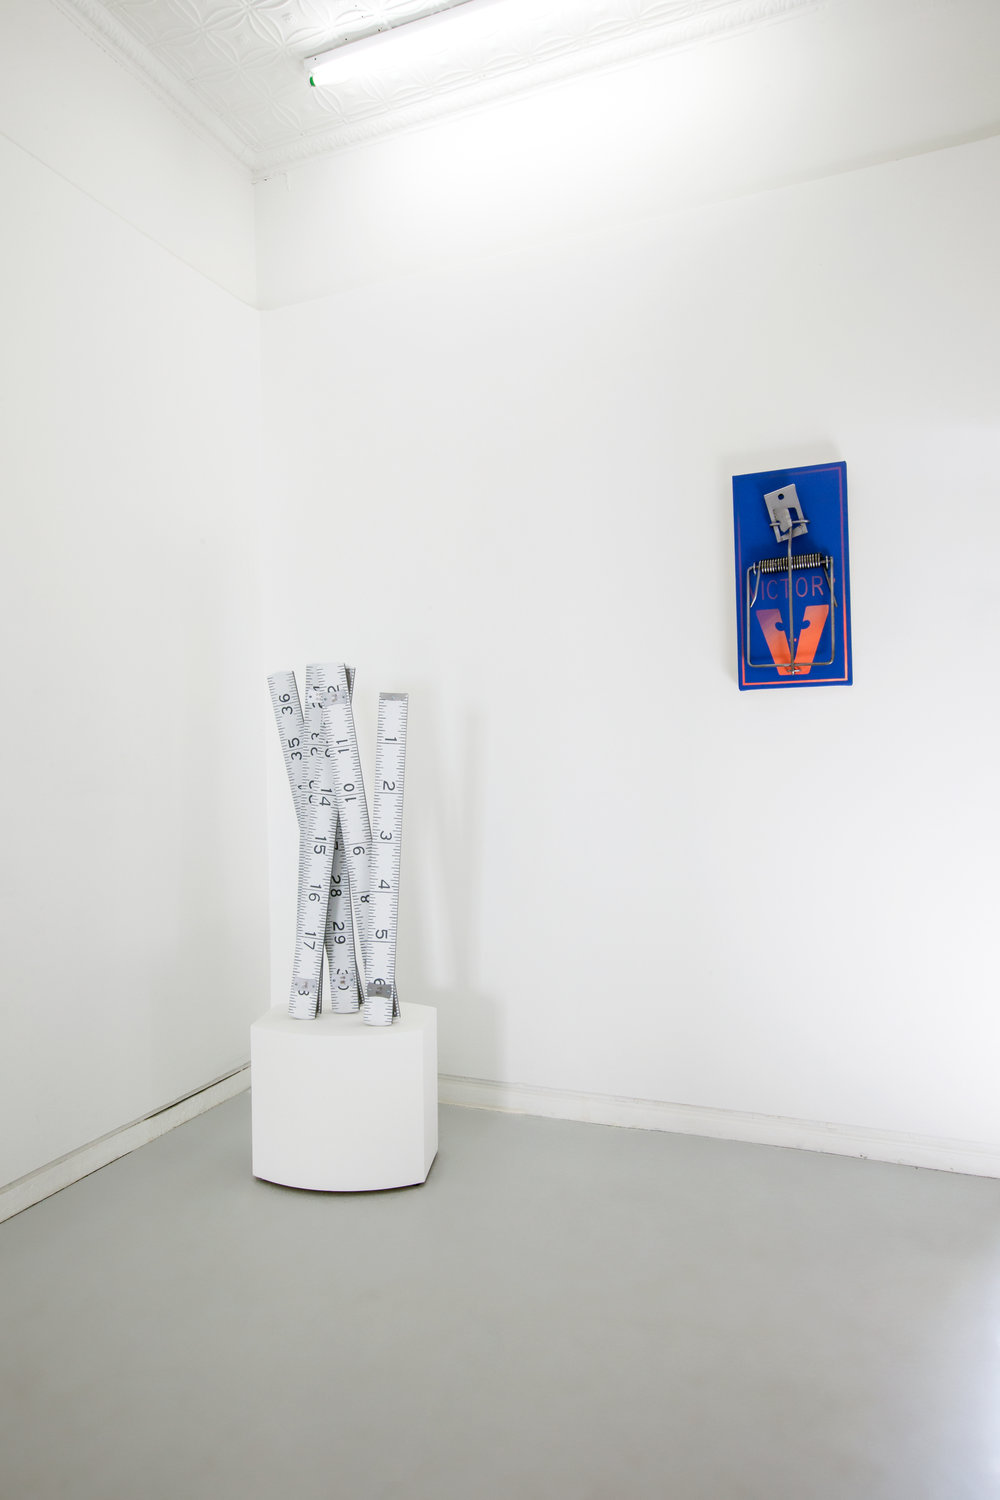 Nick_Doyle-Soft_Arrest-Installation_View-Mrs-02.jpg